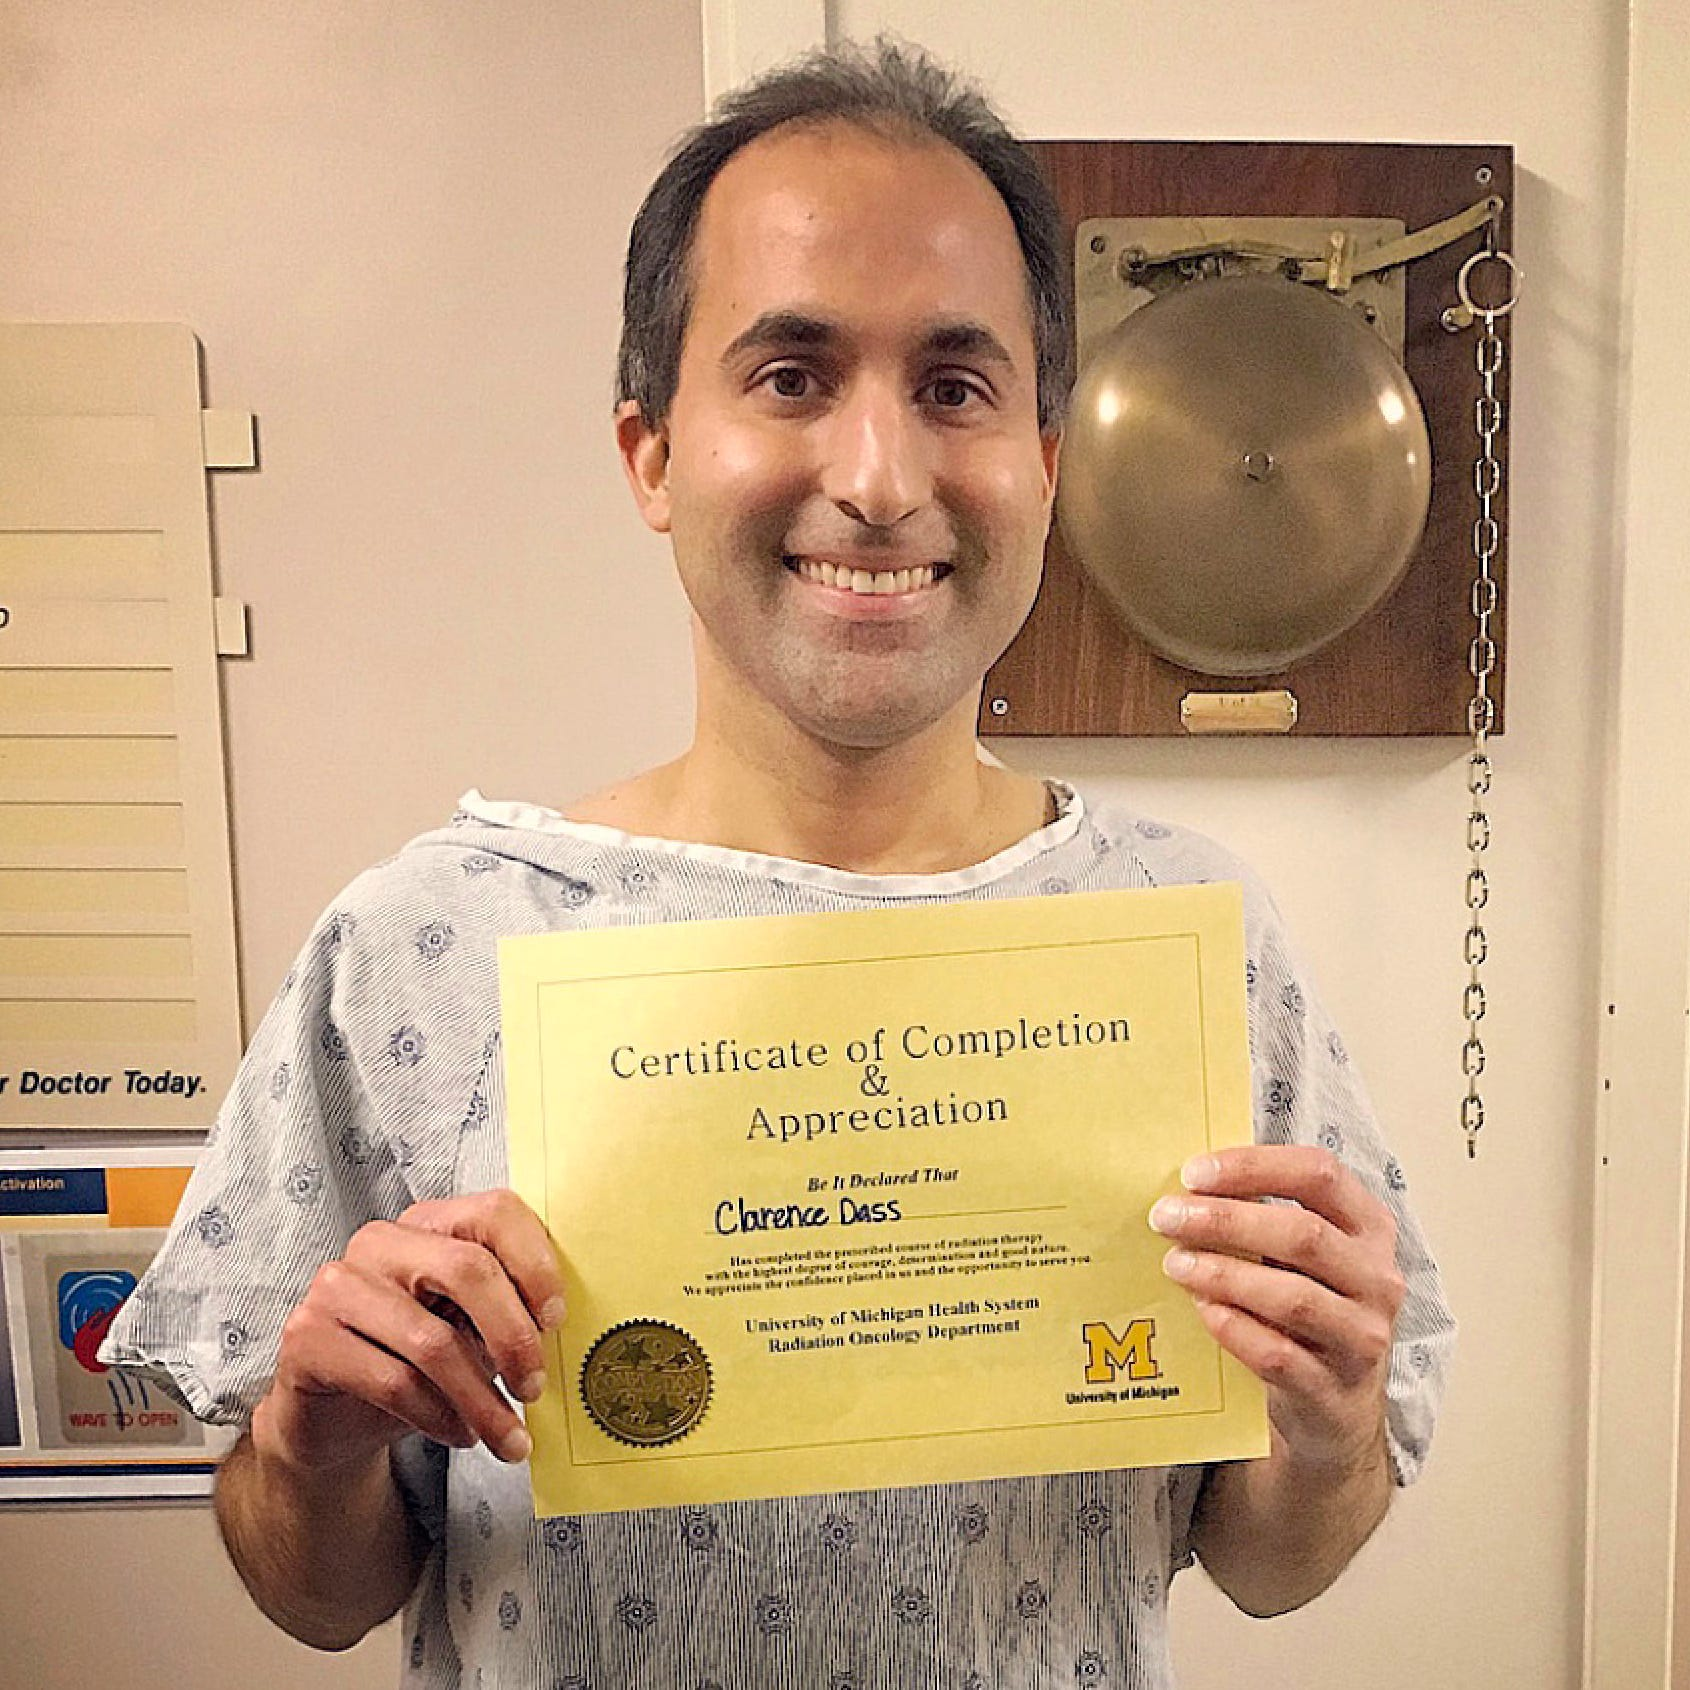 Clarence Dassholds a certificate on the day he finished treatment for stage 4 colon cancer